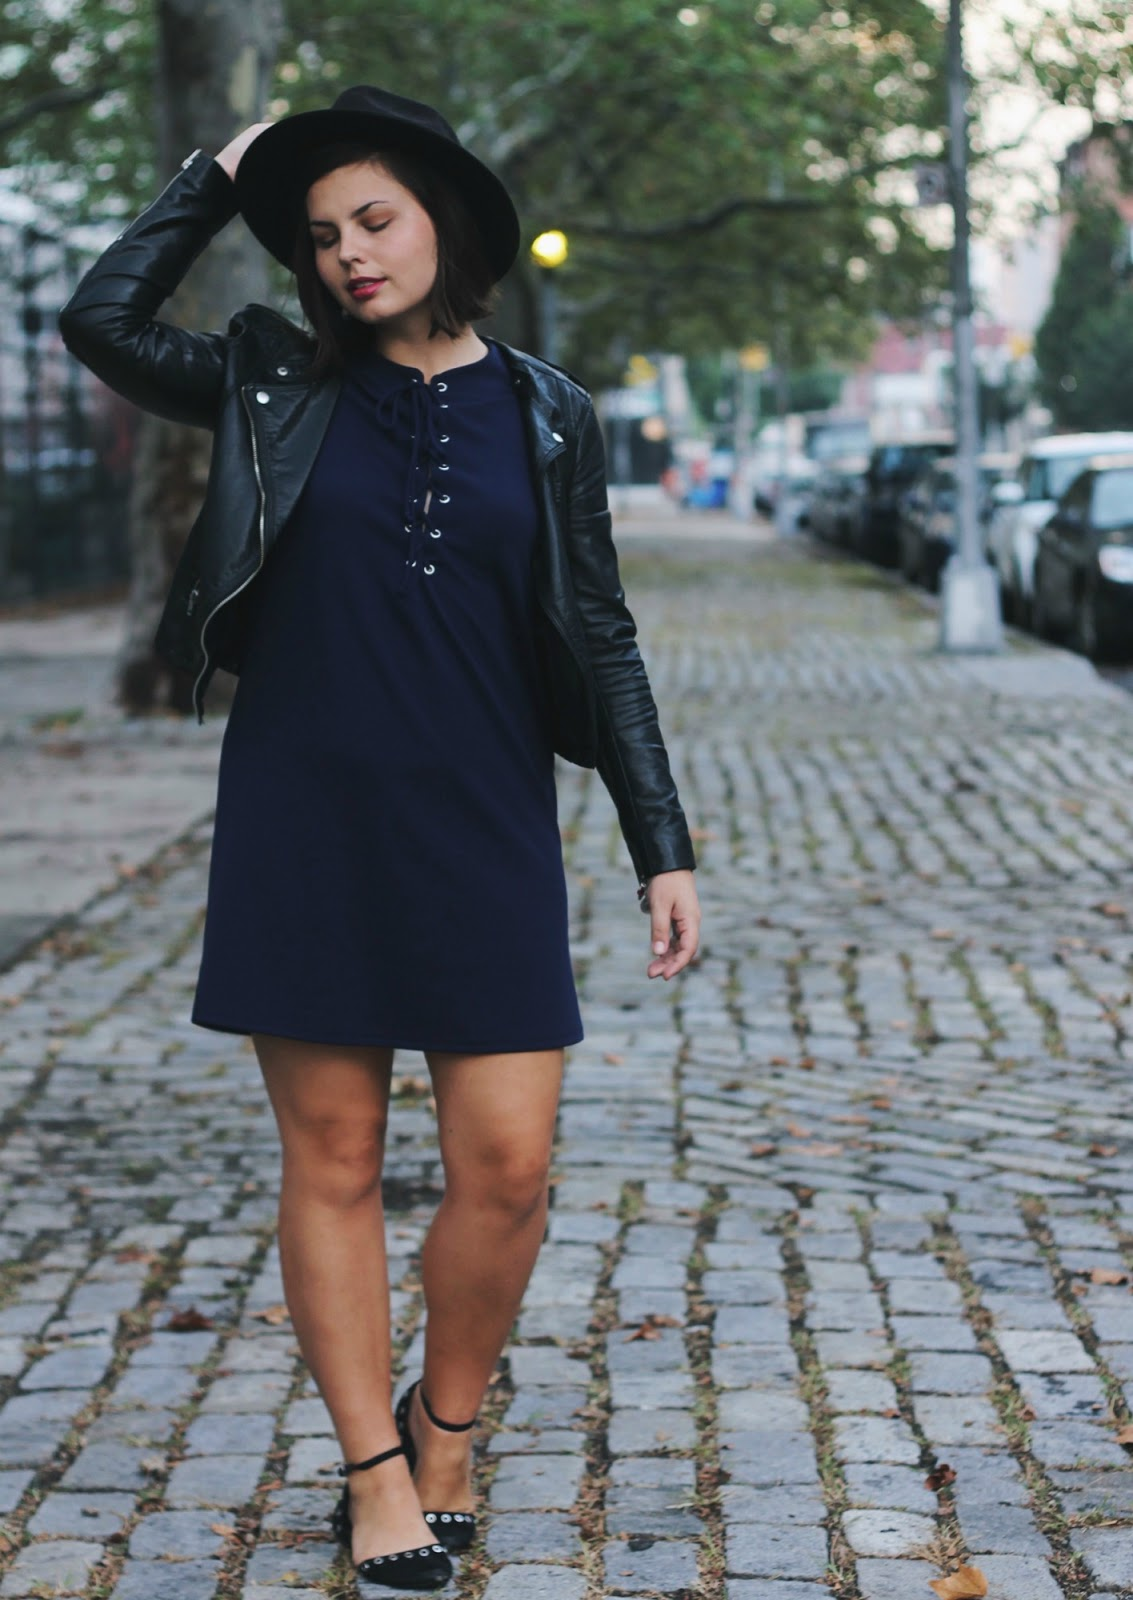 NYC Fashion Blogger | Someone Like You